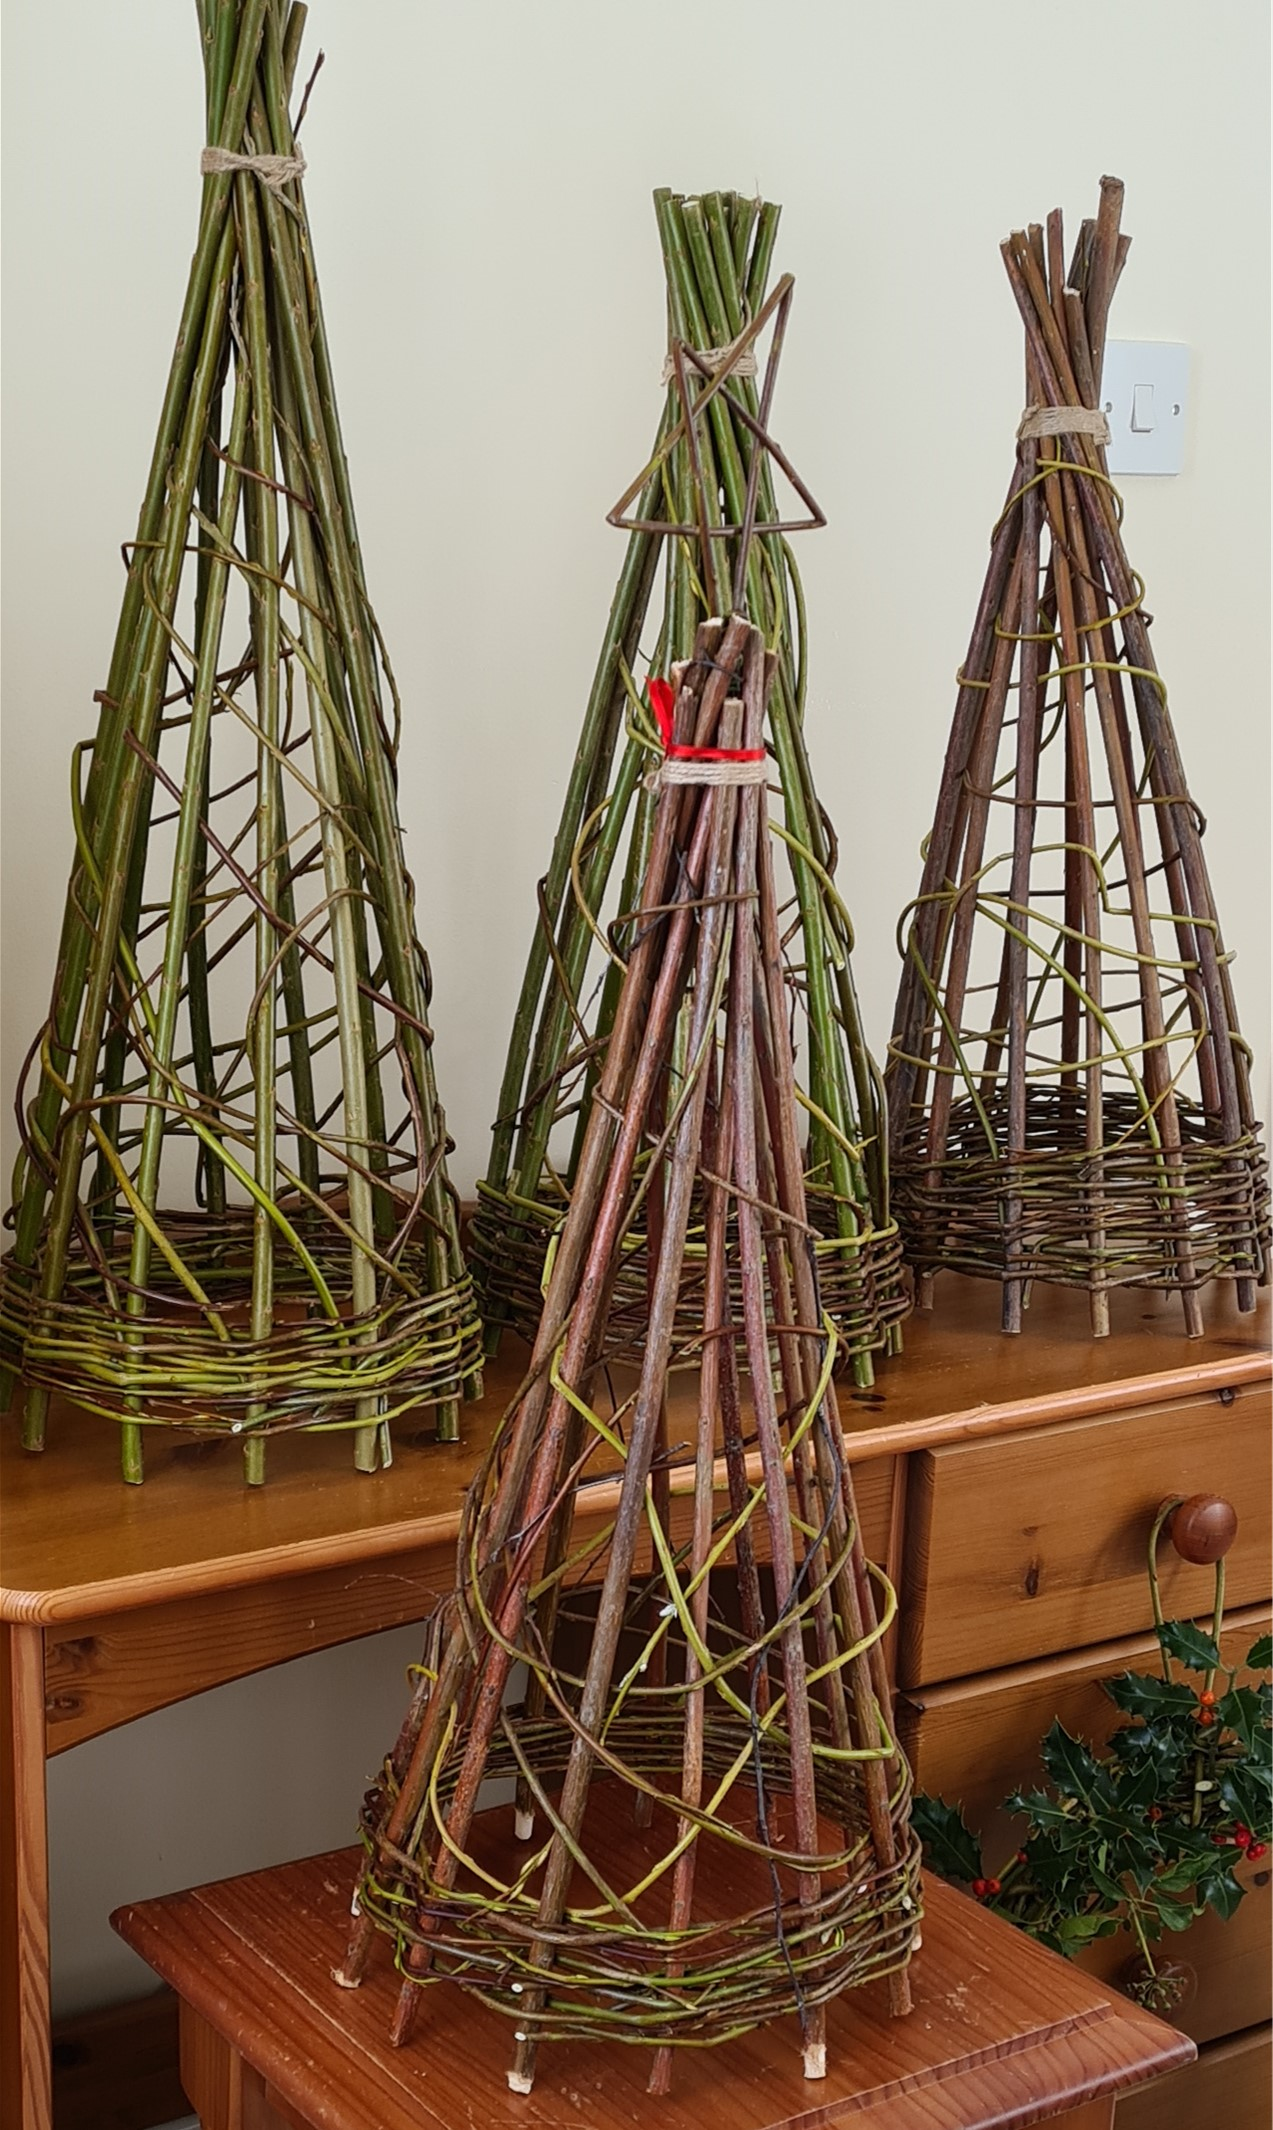 Green Willow Weaving Course